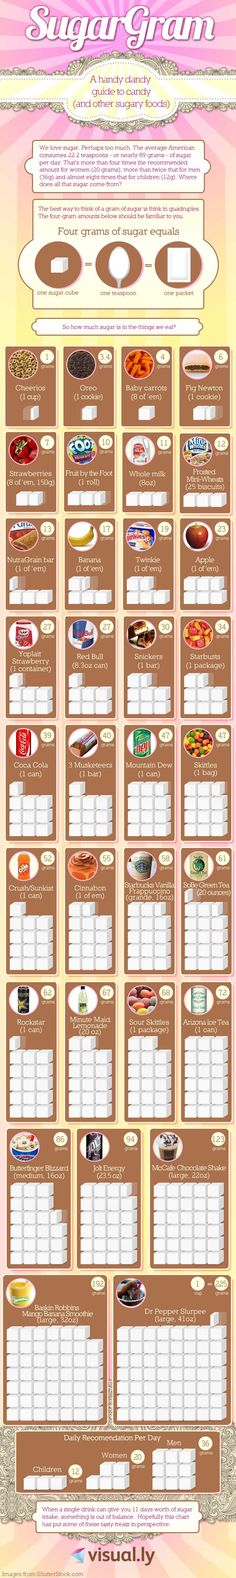 Your Guide to Sugar. gymra.com/free-trial. Start your free month now!!! Cancel anytime. #fitness #workout #health #exercise